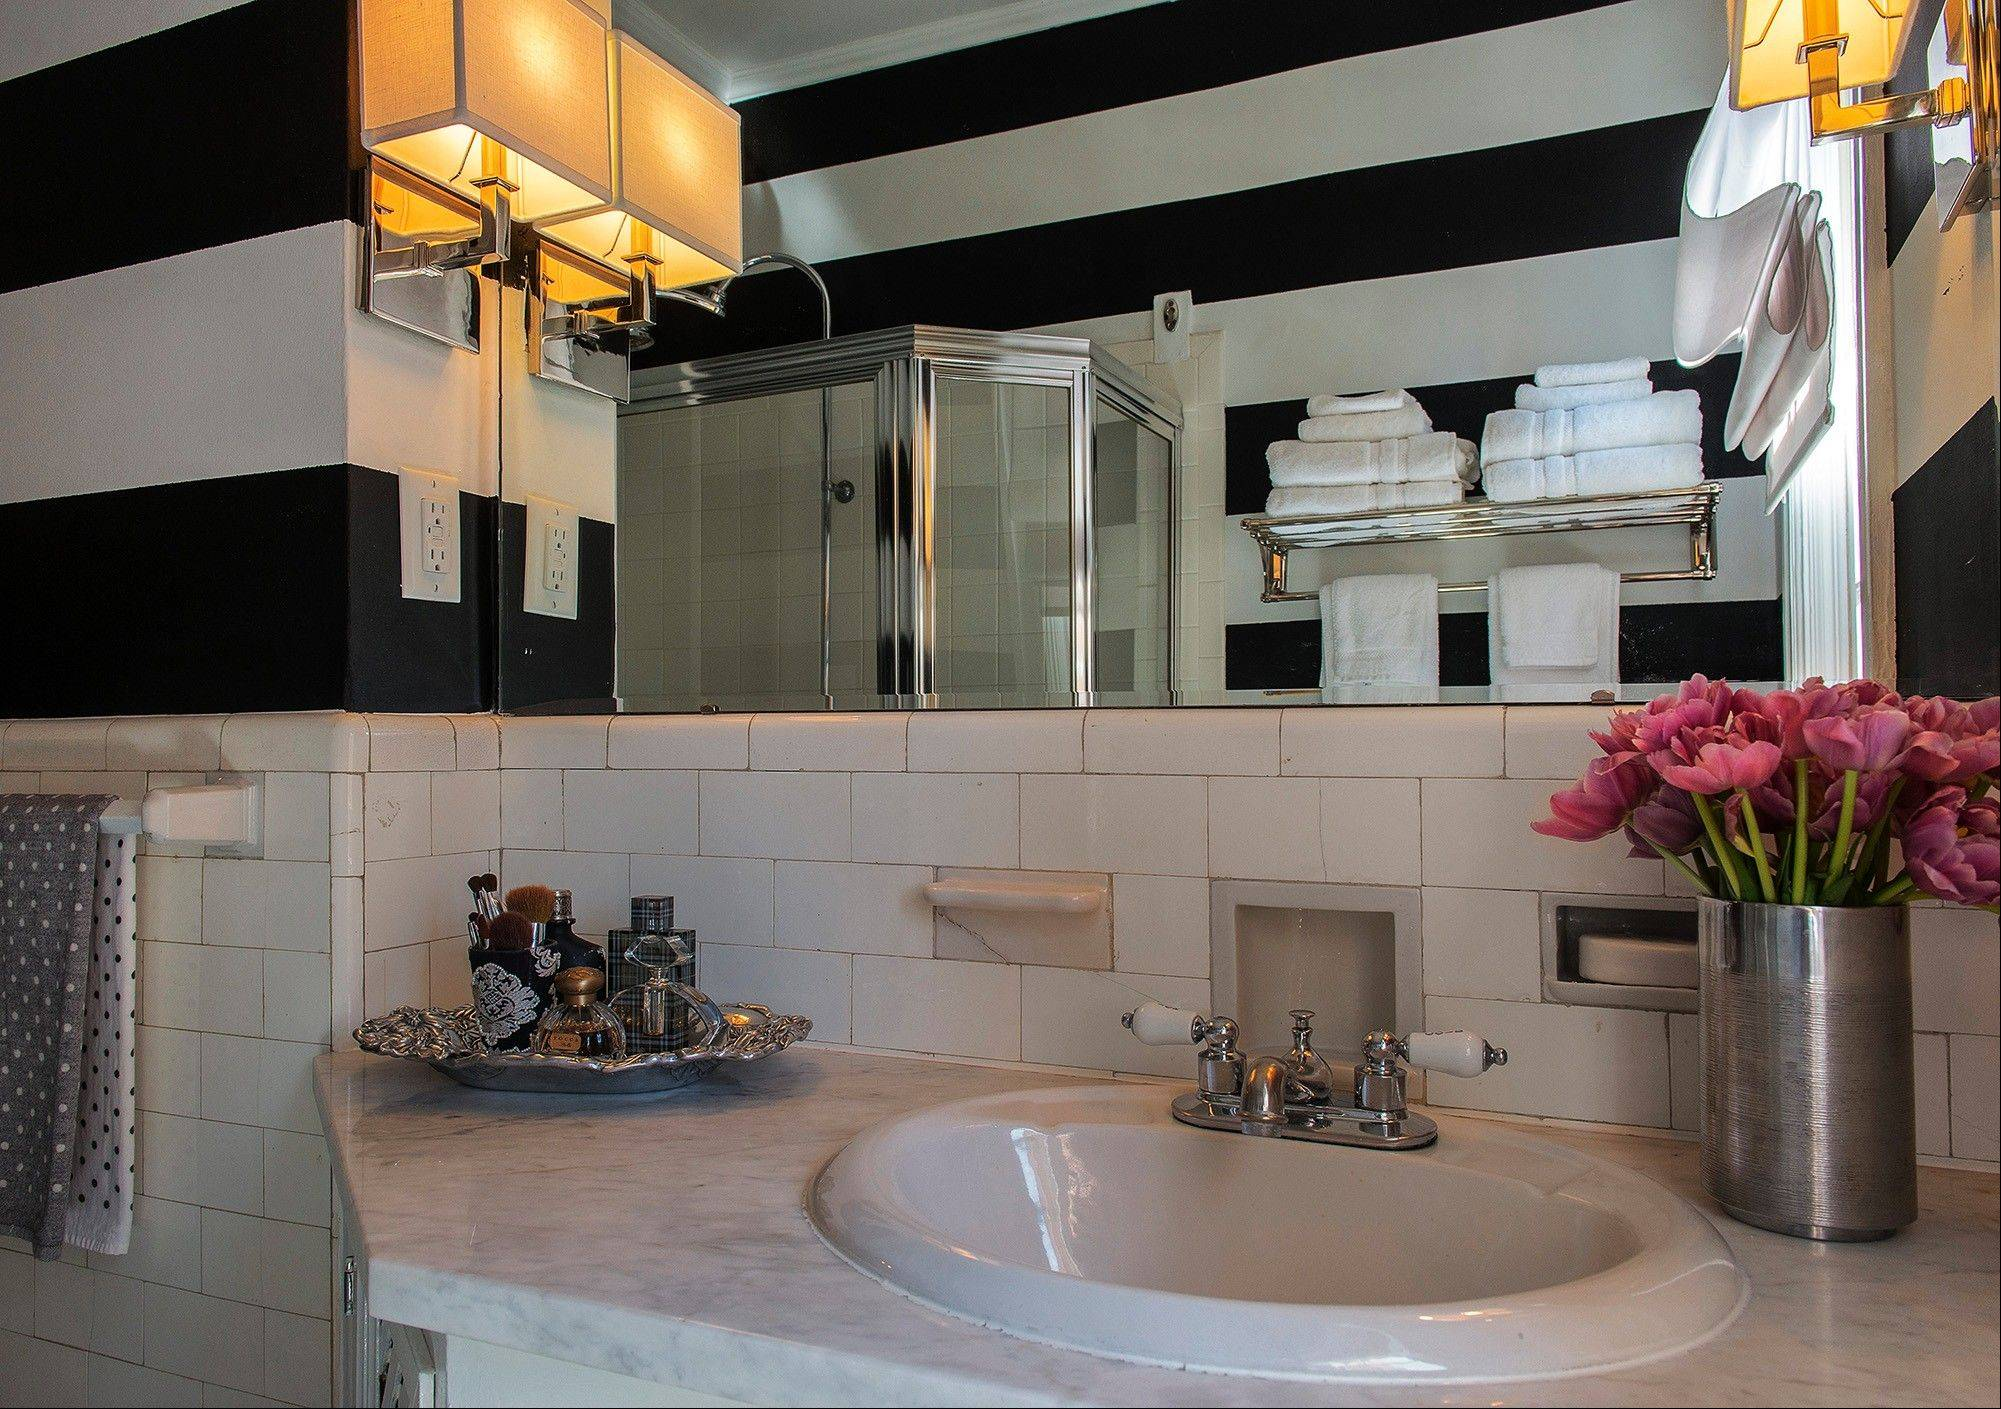 The vintage bathroom in the Kushiansí co-op got a budget makeover. The couple painted wide black and white stripes and added new lighting and a towel bar.